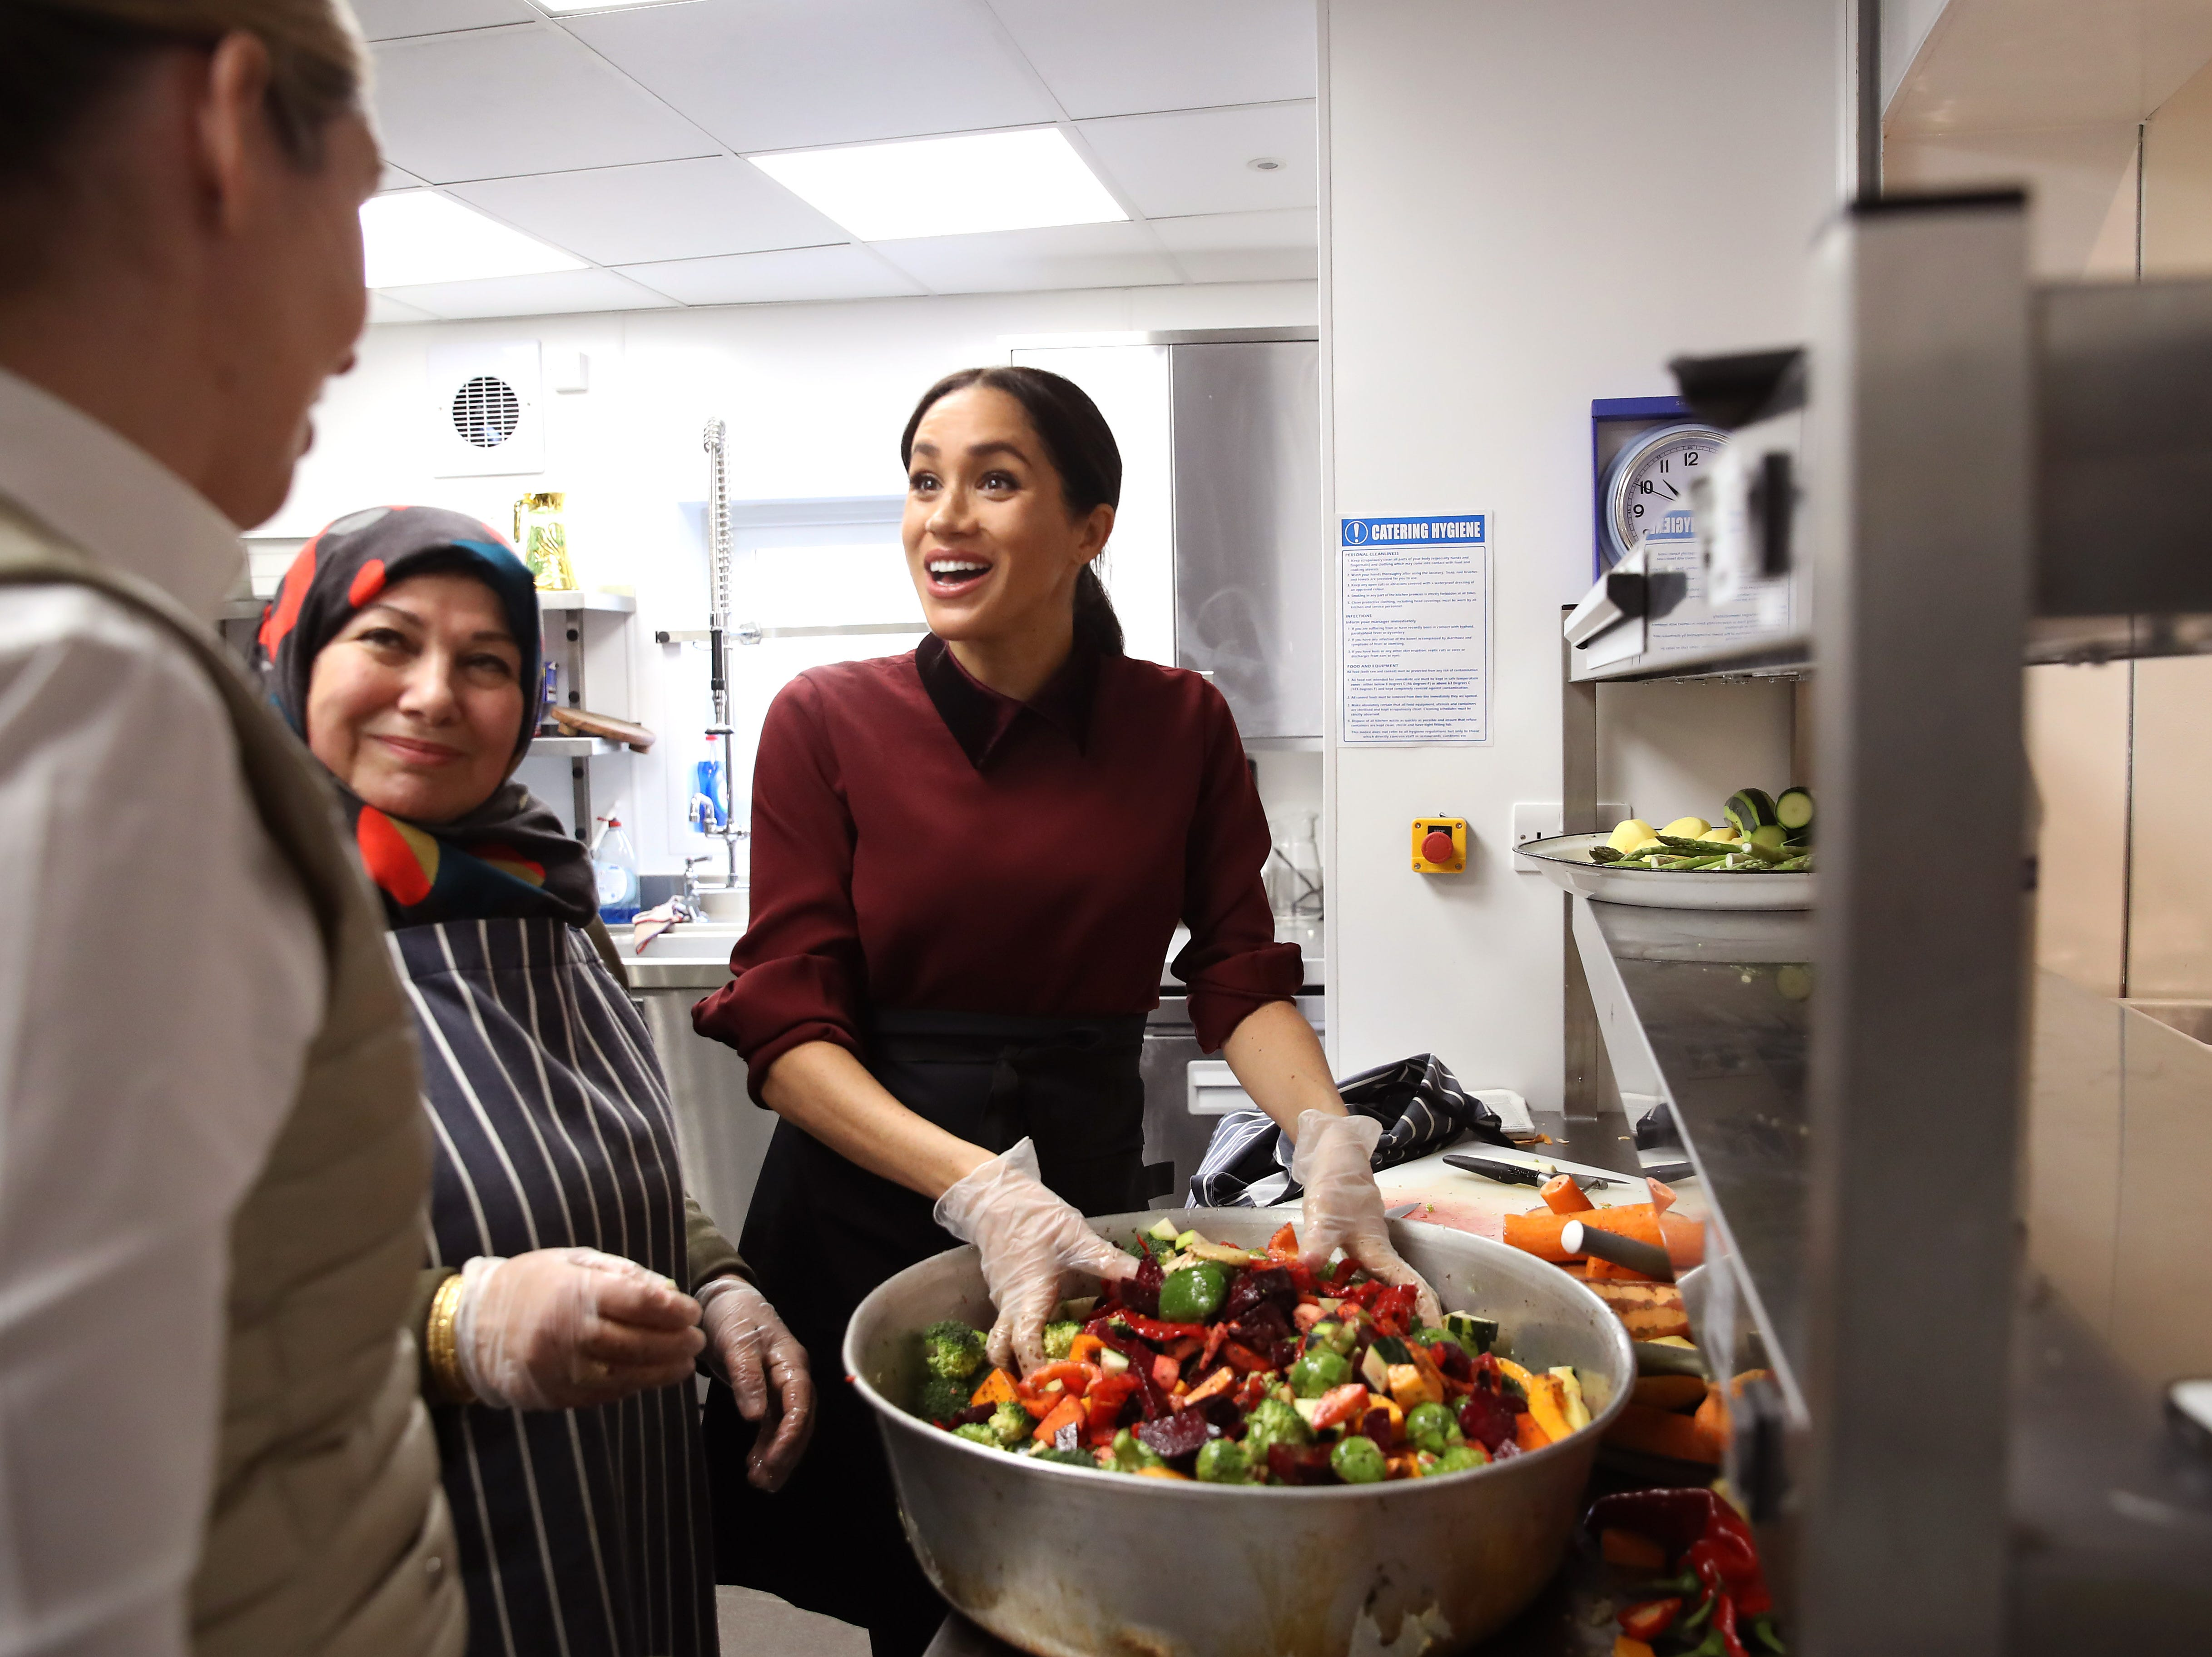 LONDON, ENGLAND - NOVEMBER 21: Meghan, Duchess of Sussex visits the Hubb Community Kitchen to see how funds raised by the 'Together: Our Community' Cookbook are making a difference at Al Manaar, North Kensington on November 21, 2018 in London, England. (Photo by Chris Jackson/Getty Images) ORG XMIT: 775256359 ORIG FILE ID: 1070484644